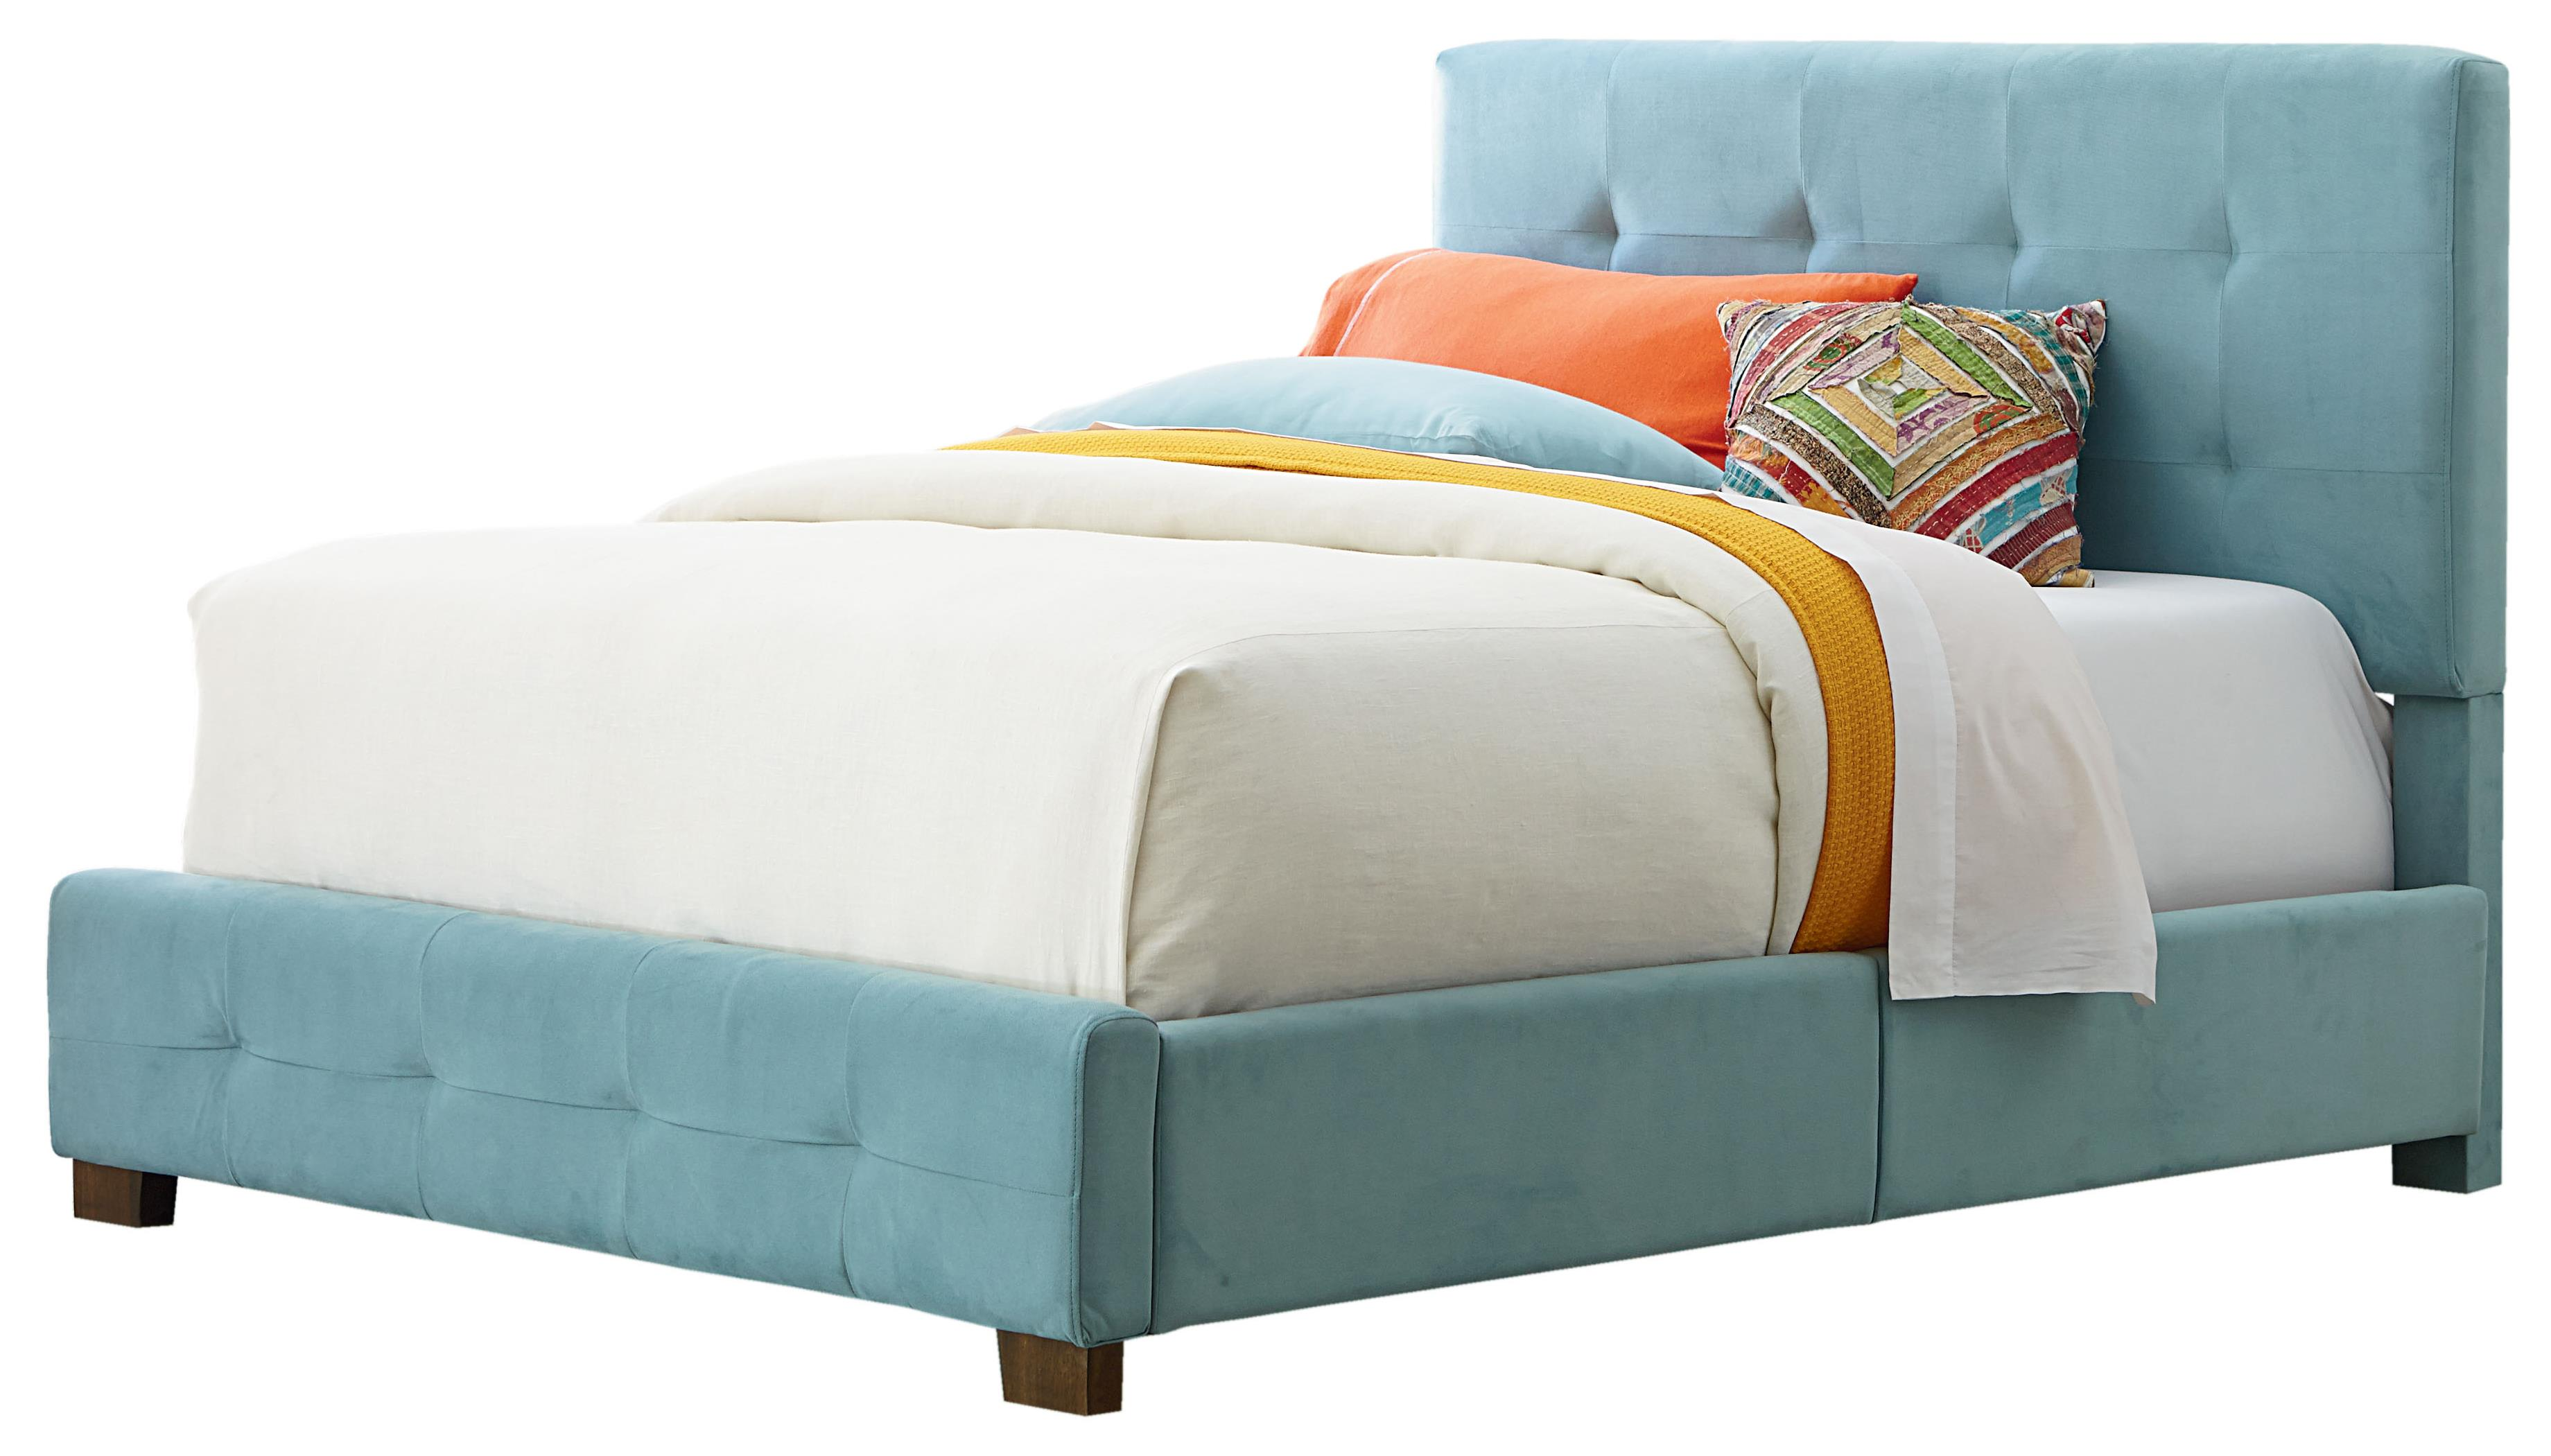 Standard Furniture Madison Twin Upholstered Bed with Short Wood Legs - Item Number: 99201